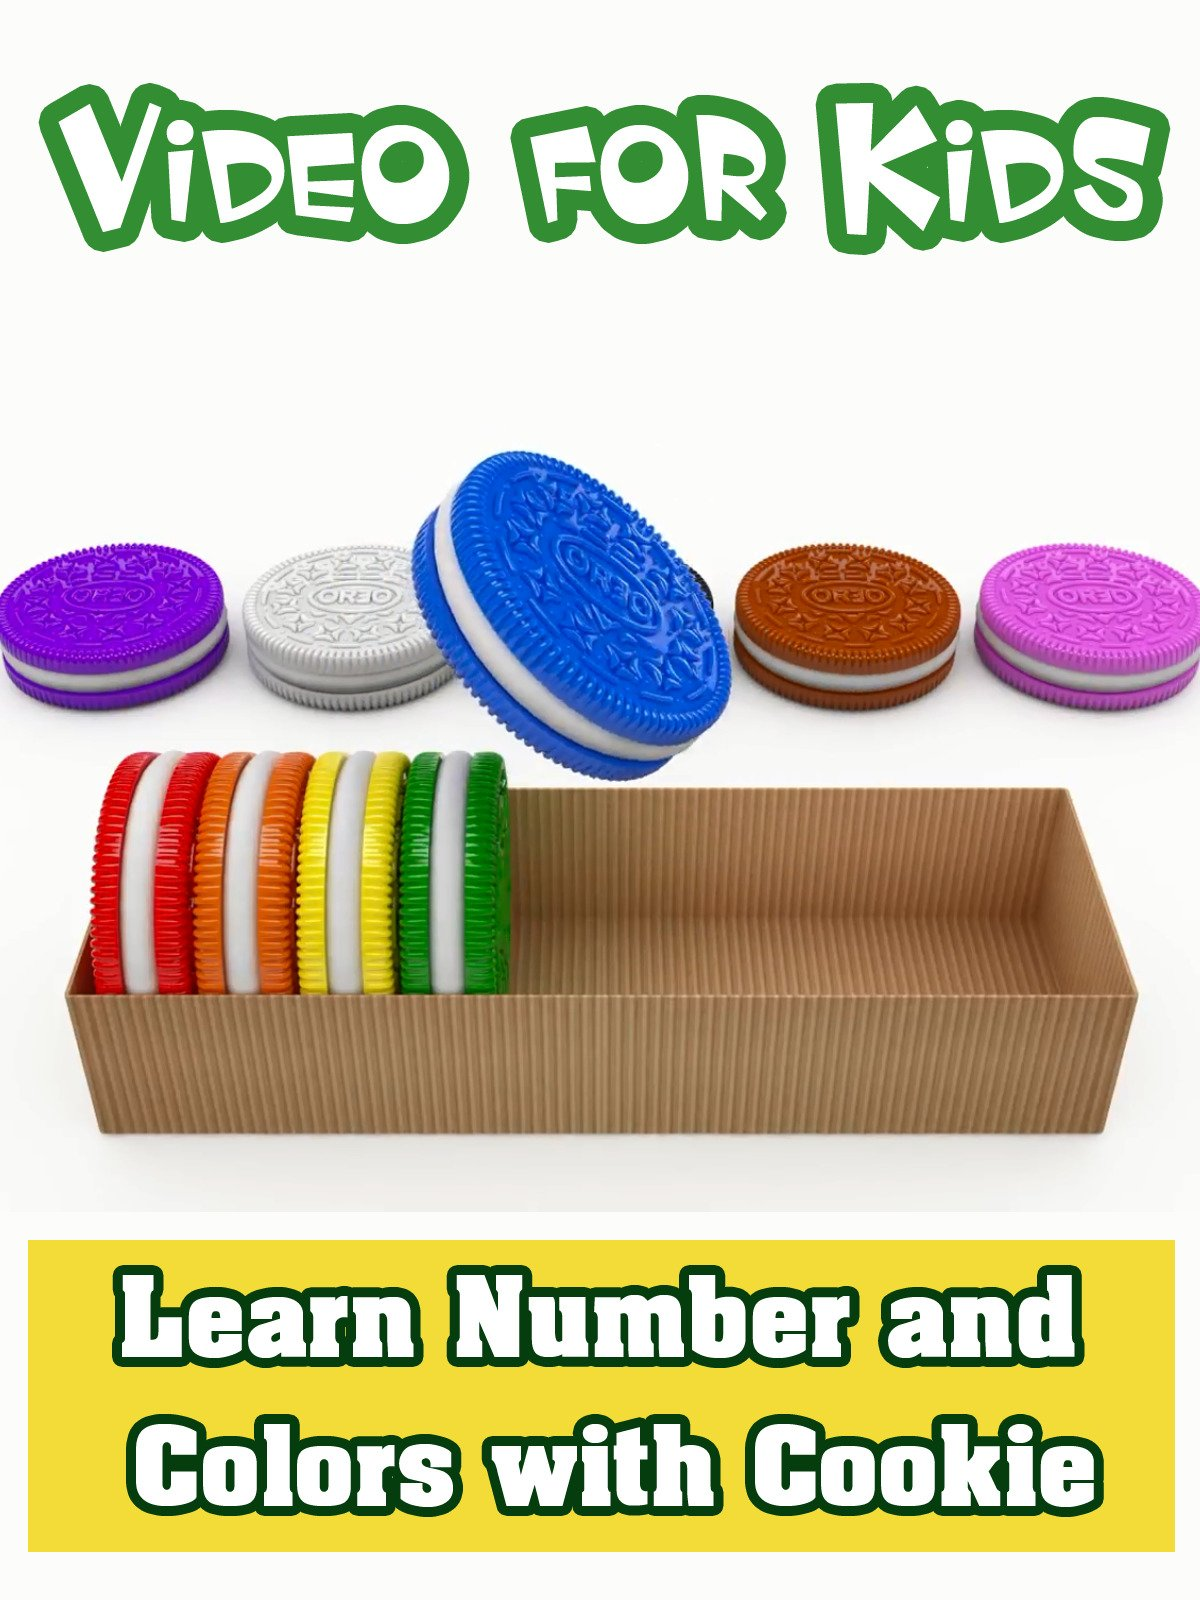 Learn Number and Colors with Cookie